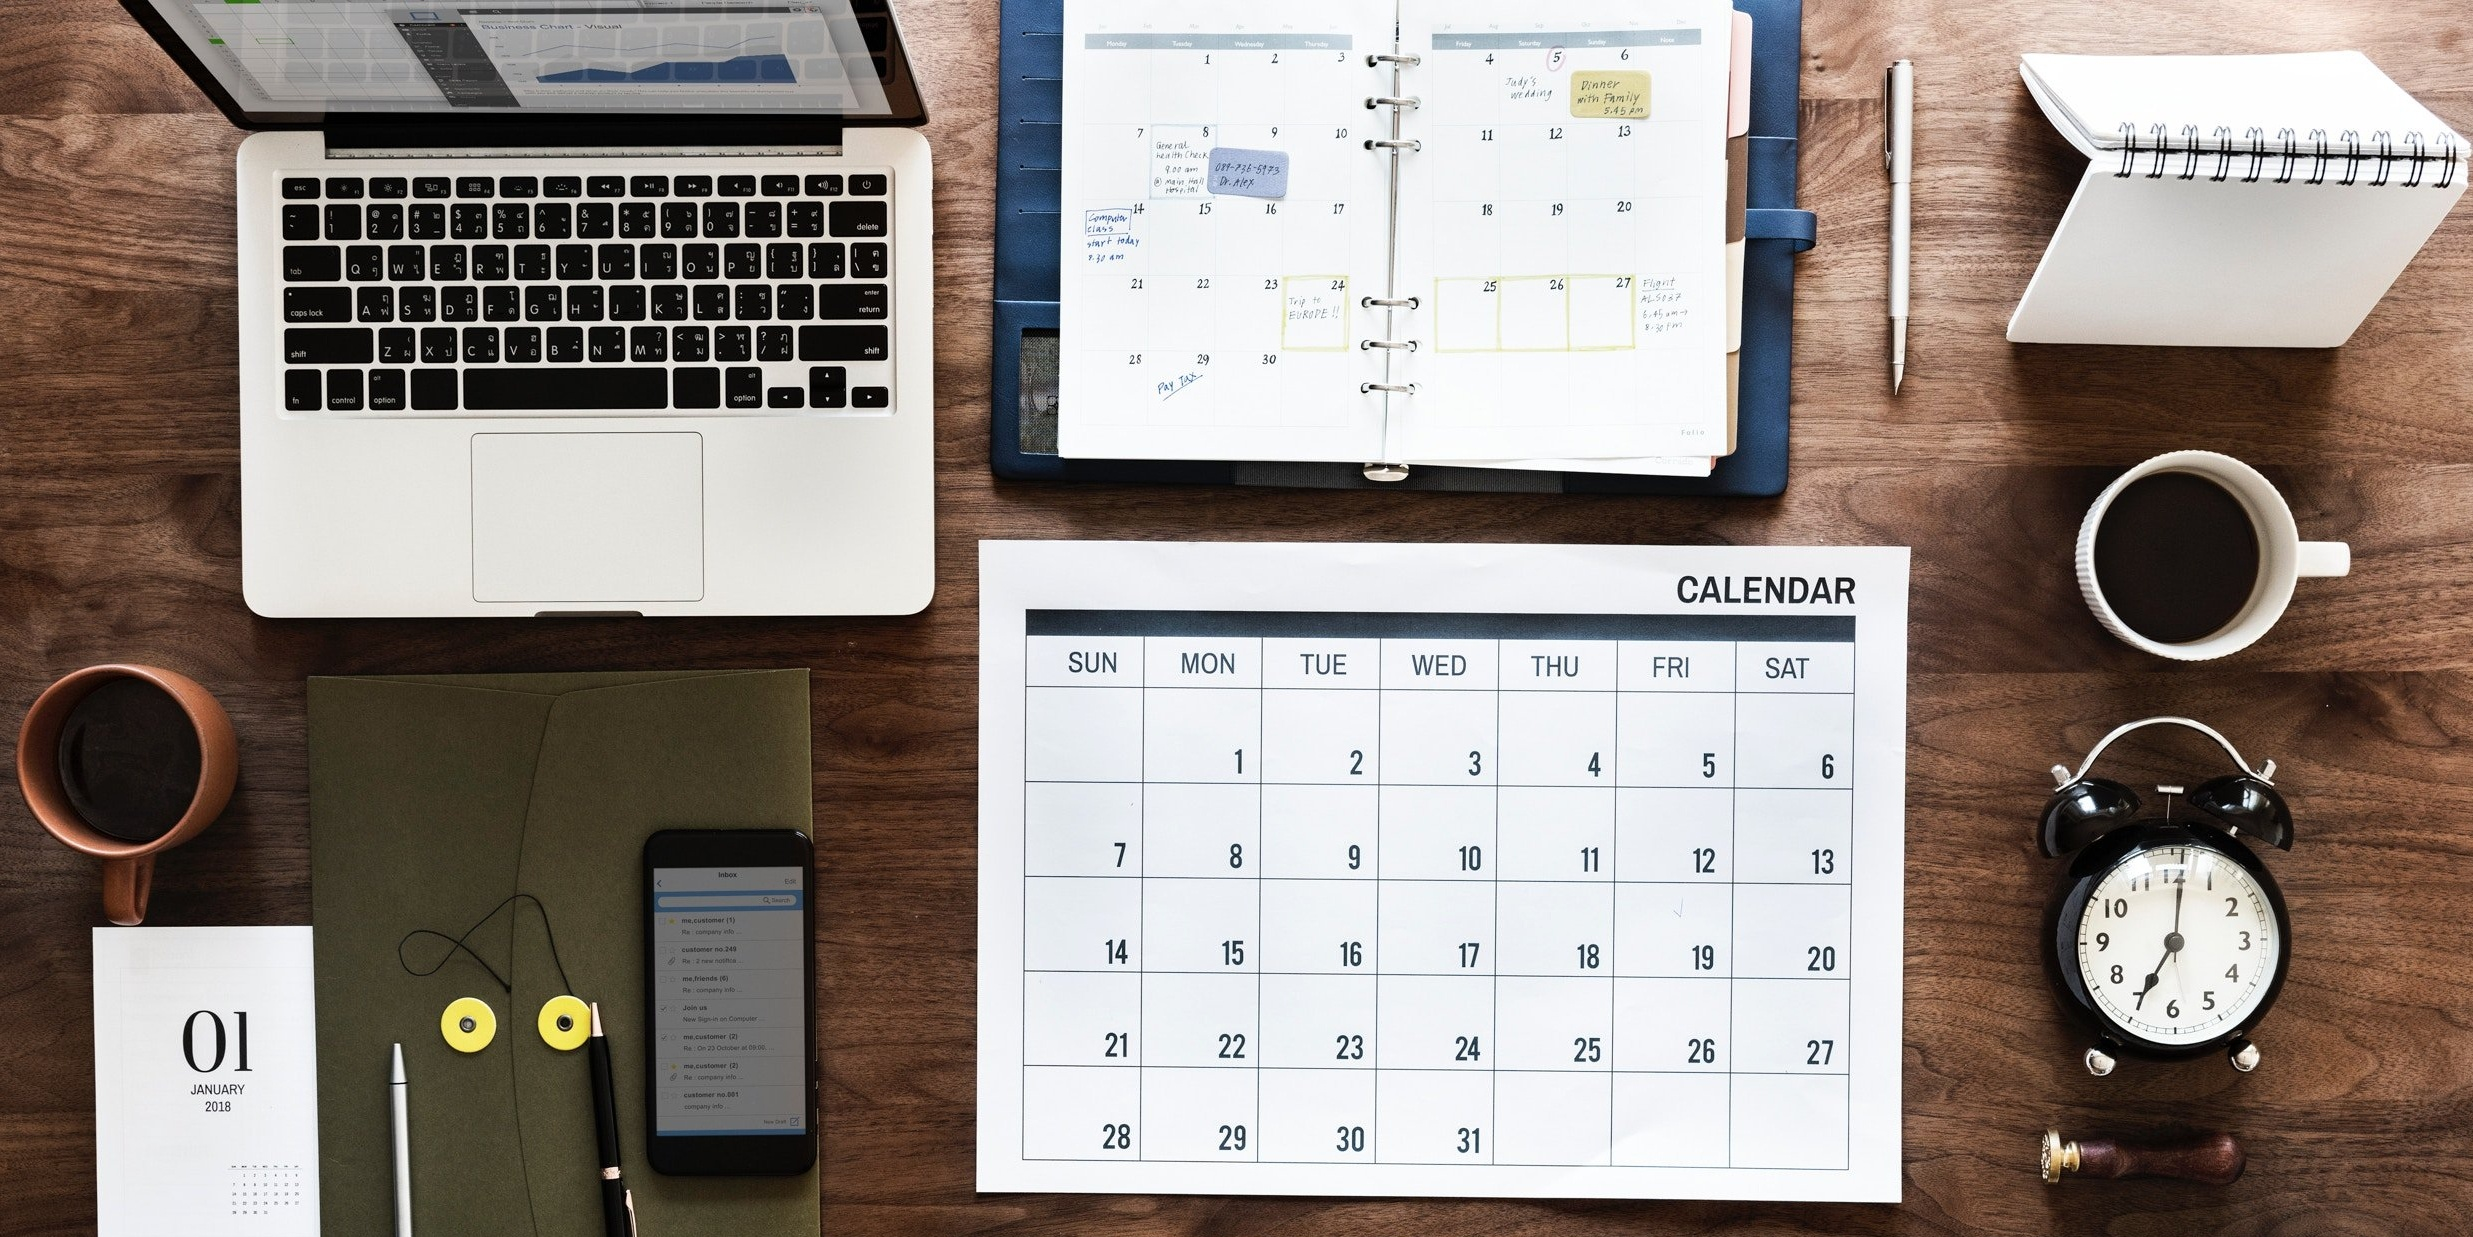 sales managers use calendar reminders for talent management